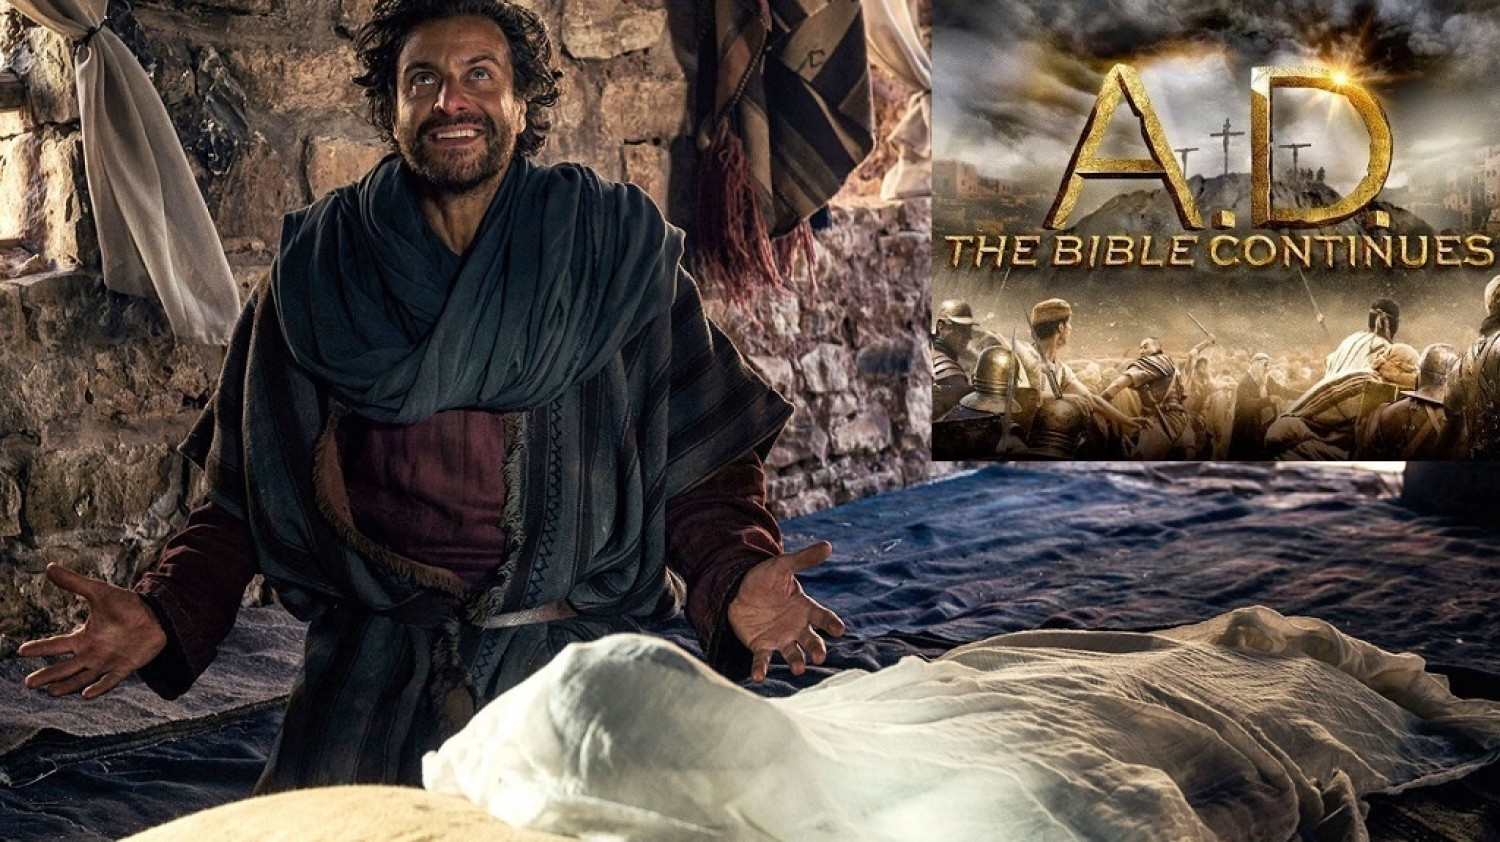 Recap & Review - Episode 11 / A.D. The Bible Continues